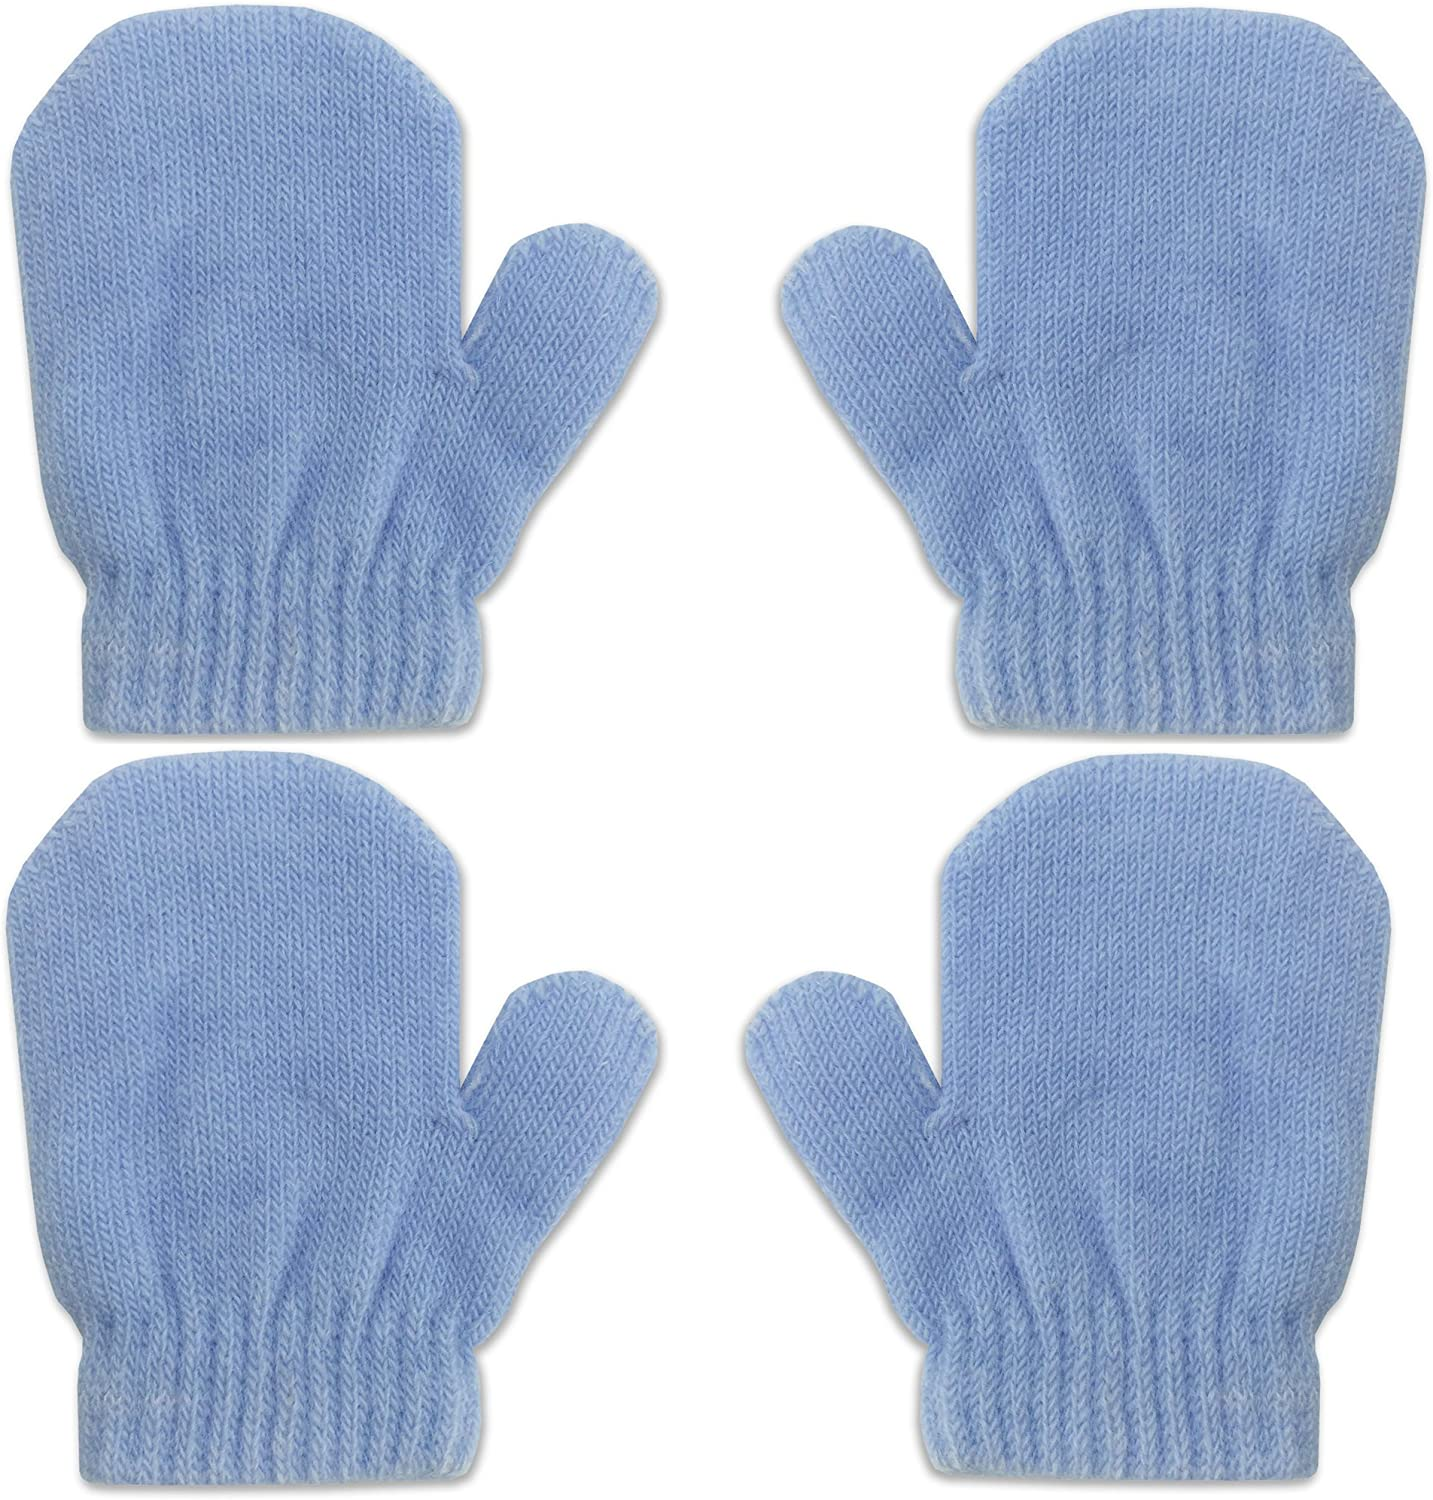 Baby Kids Gloves Ski Casual Mittens Gloves Knitted Elastic Thickened Warm Winter Color : Sky Blue